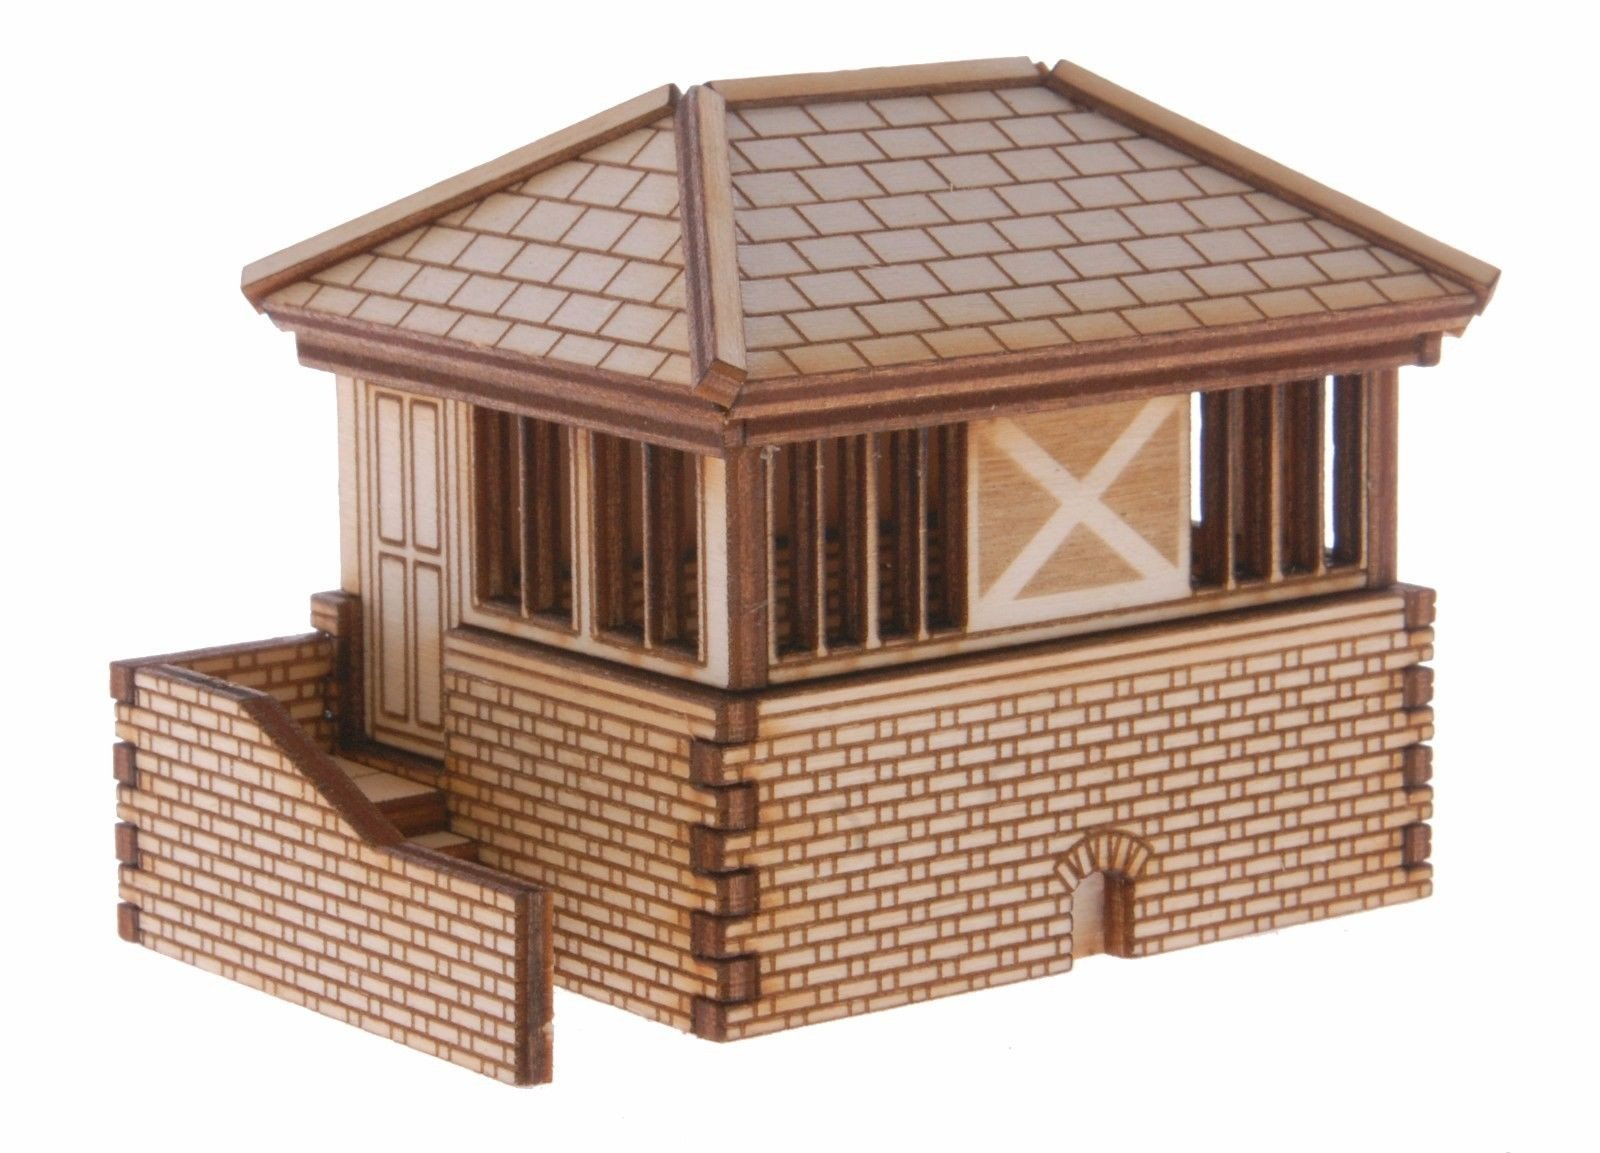 SB002 Signal Box Type 2 OO Gauge Laser Cut Kit